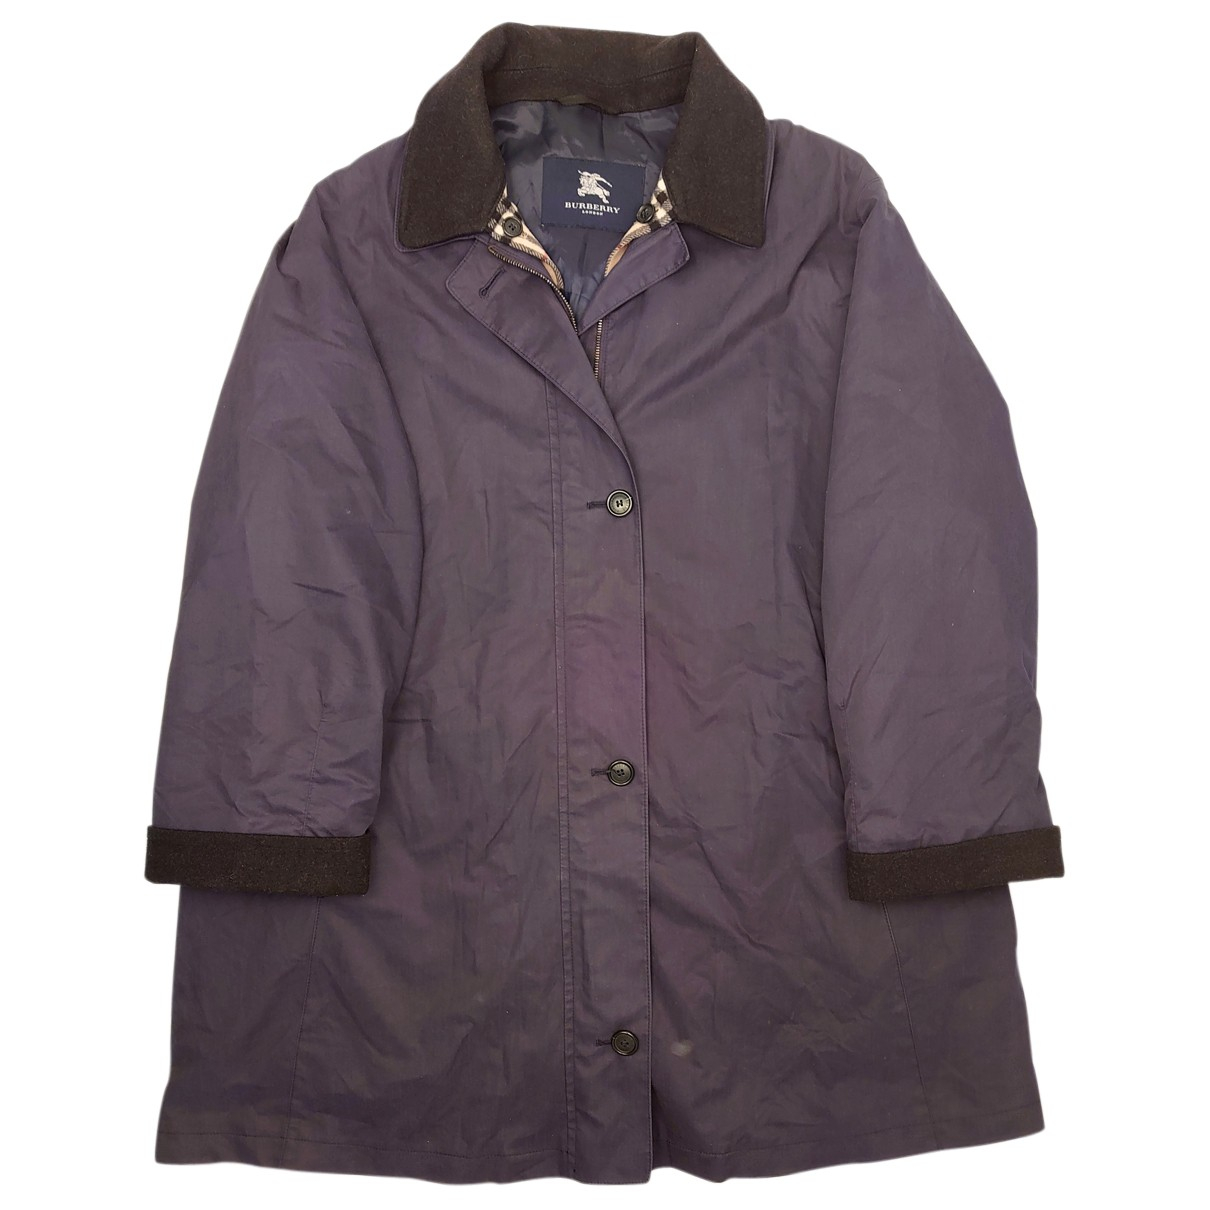 Burberry N Navy Cotton jacket for Women 42 FR